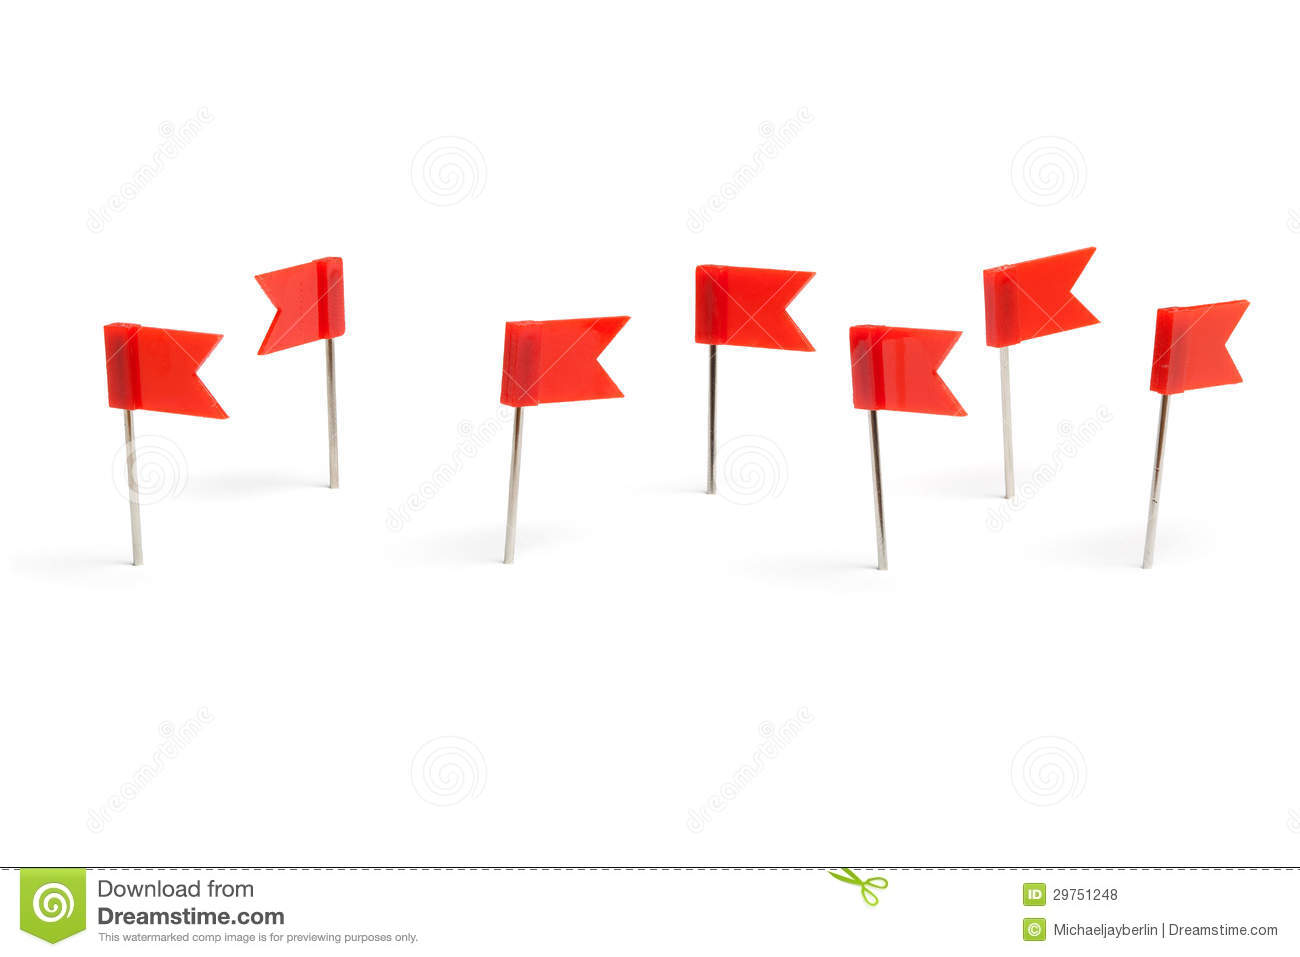 inboud_red_flags